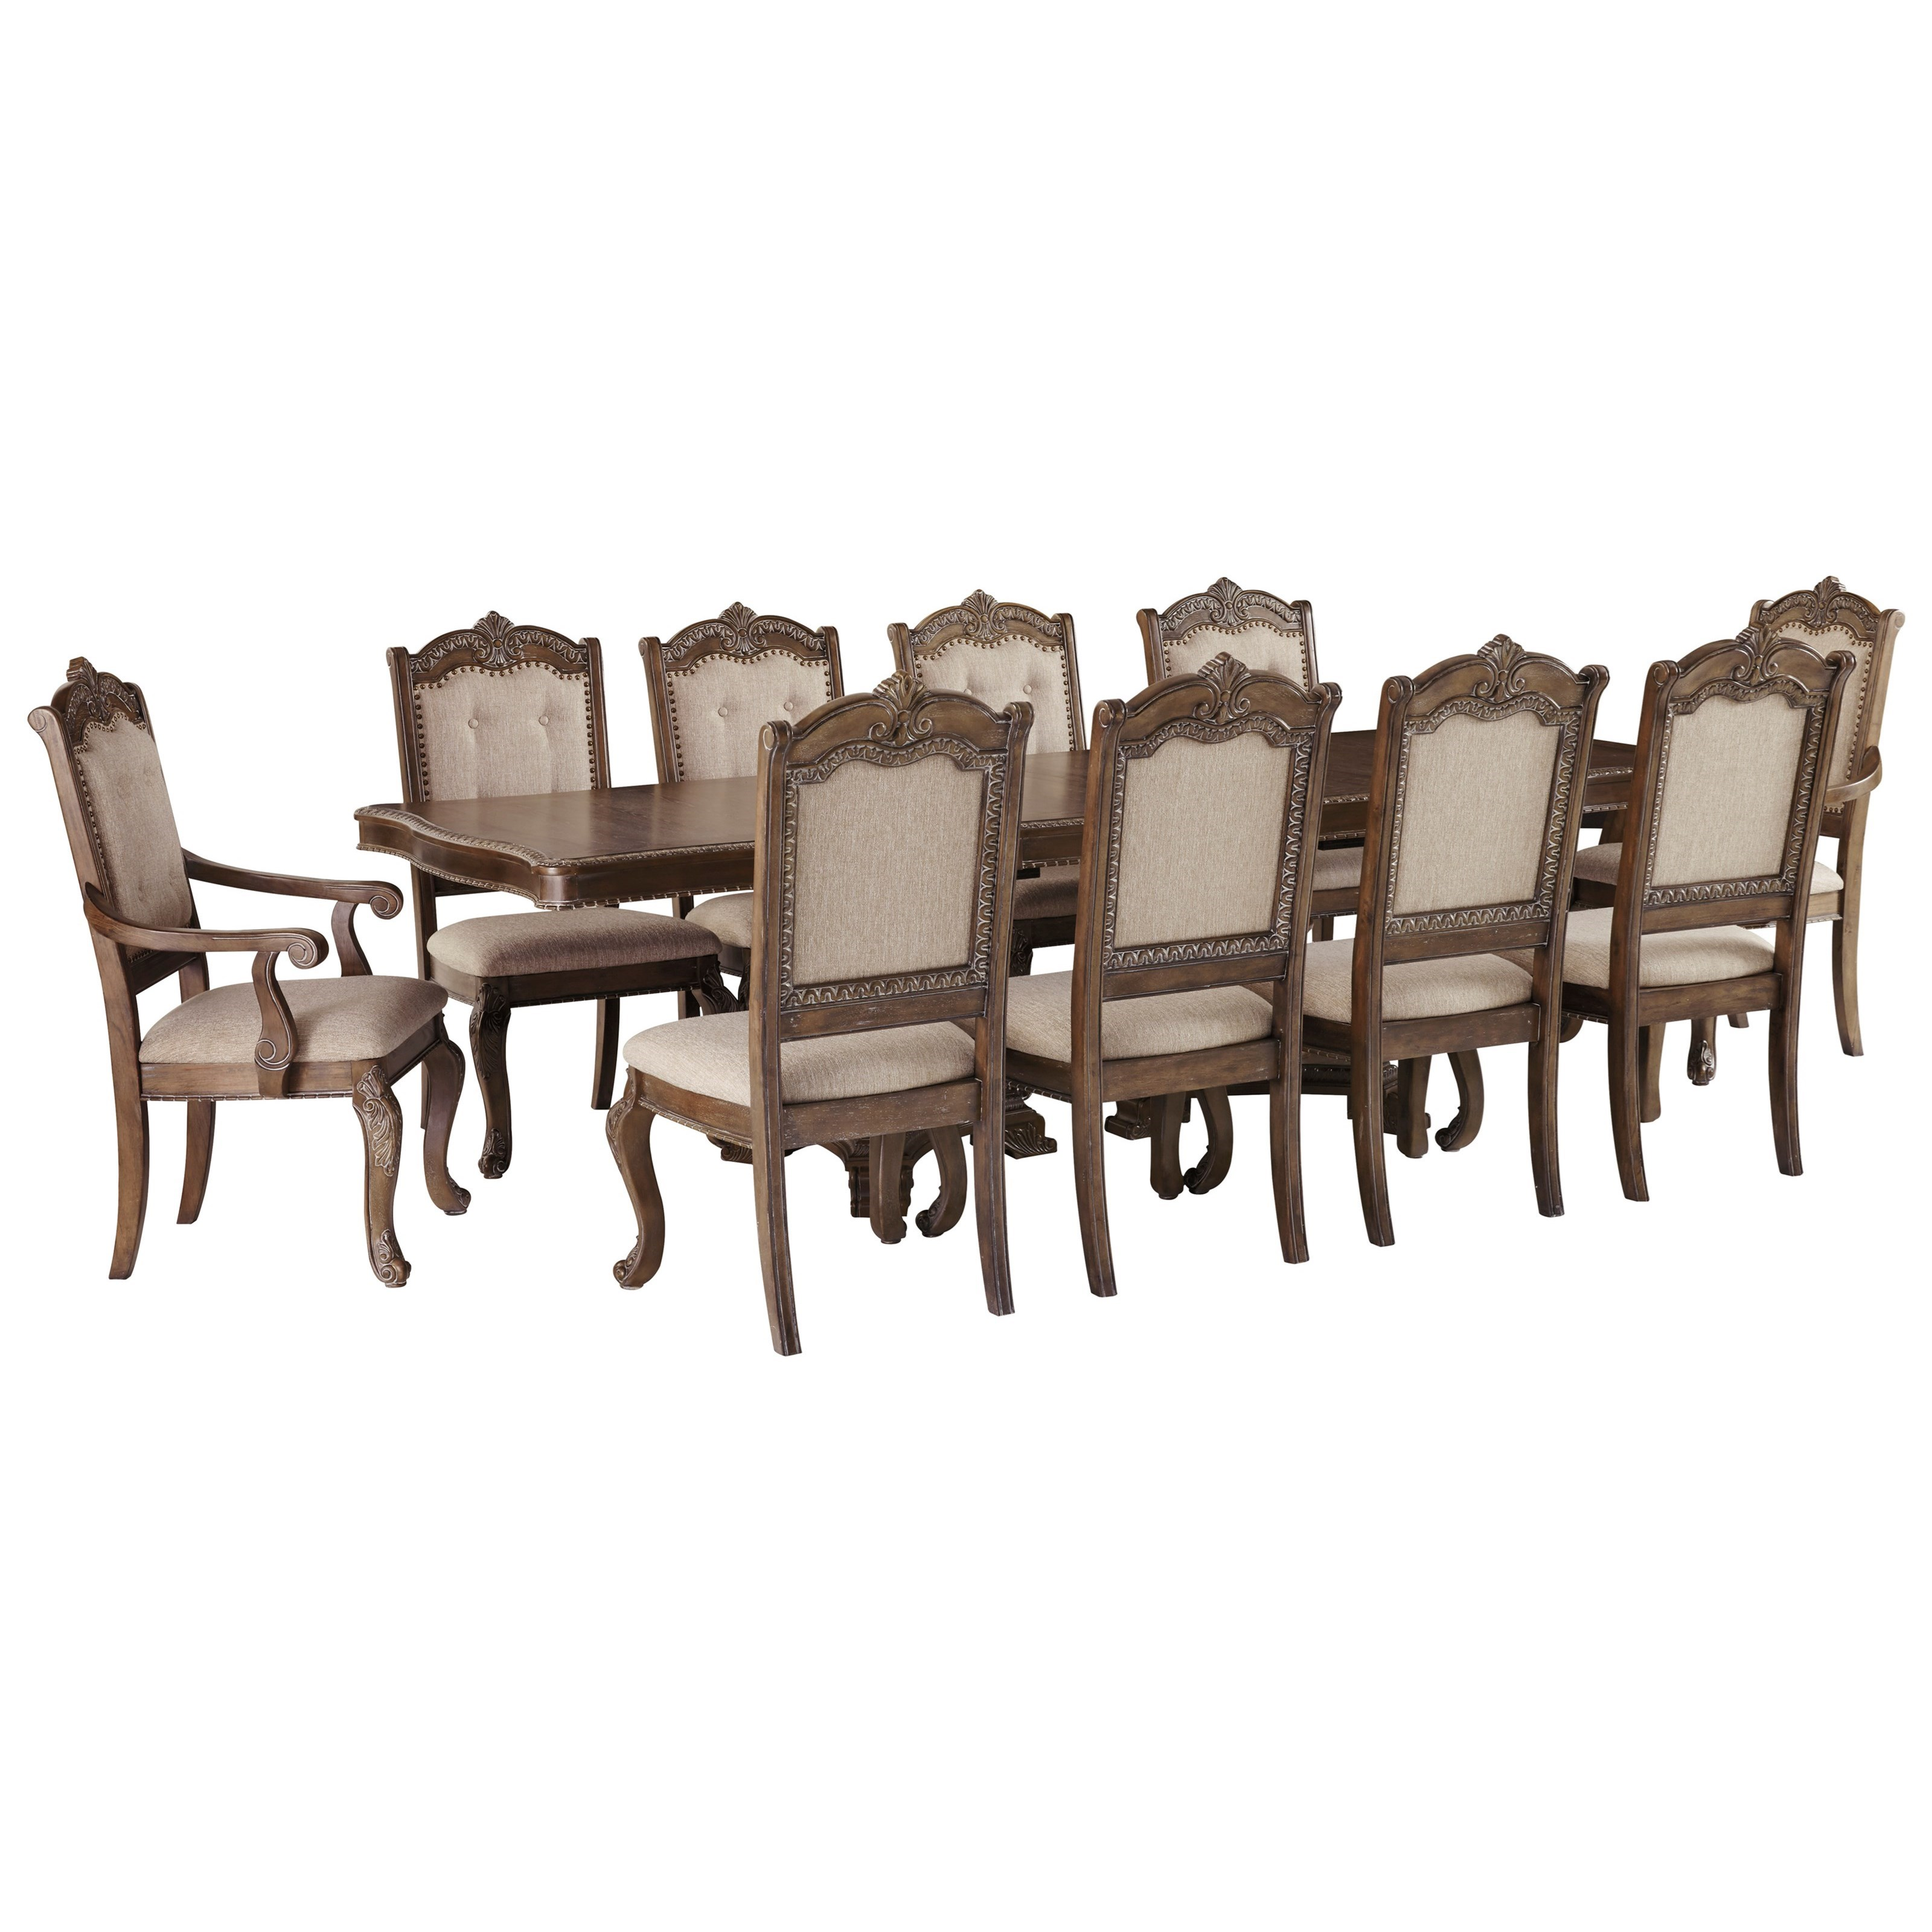 Charmond 11-Piece Rectangular Extension Table Set by Signature Design by Ashley at Sparks HomeStore